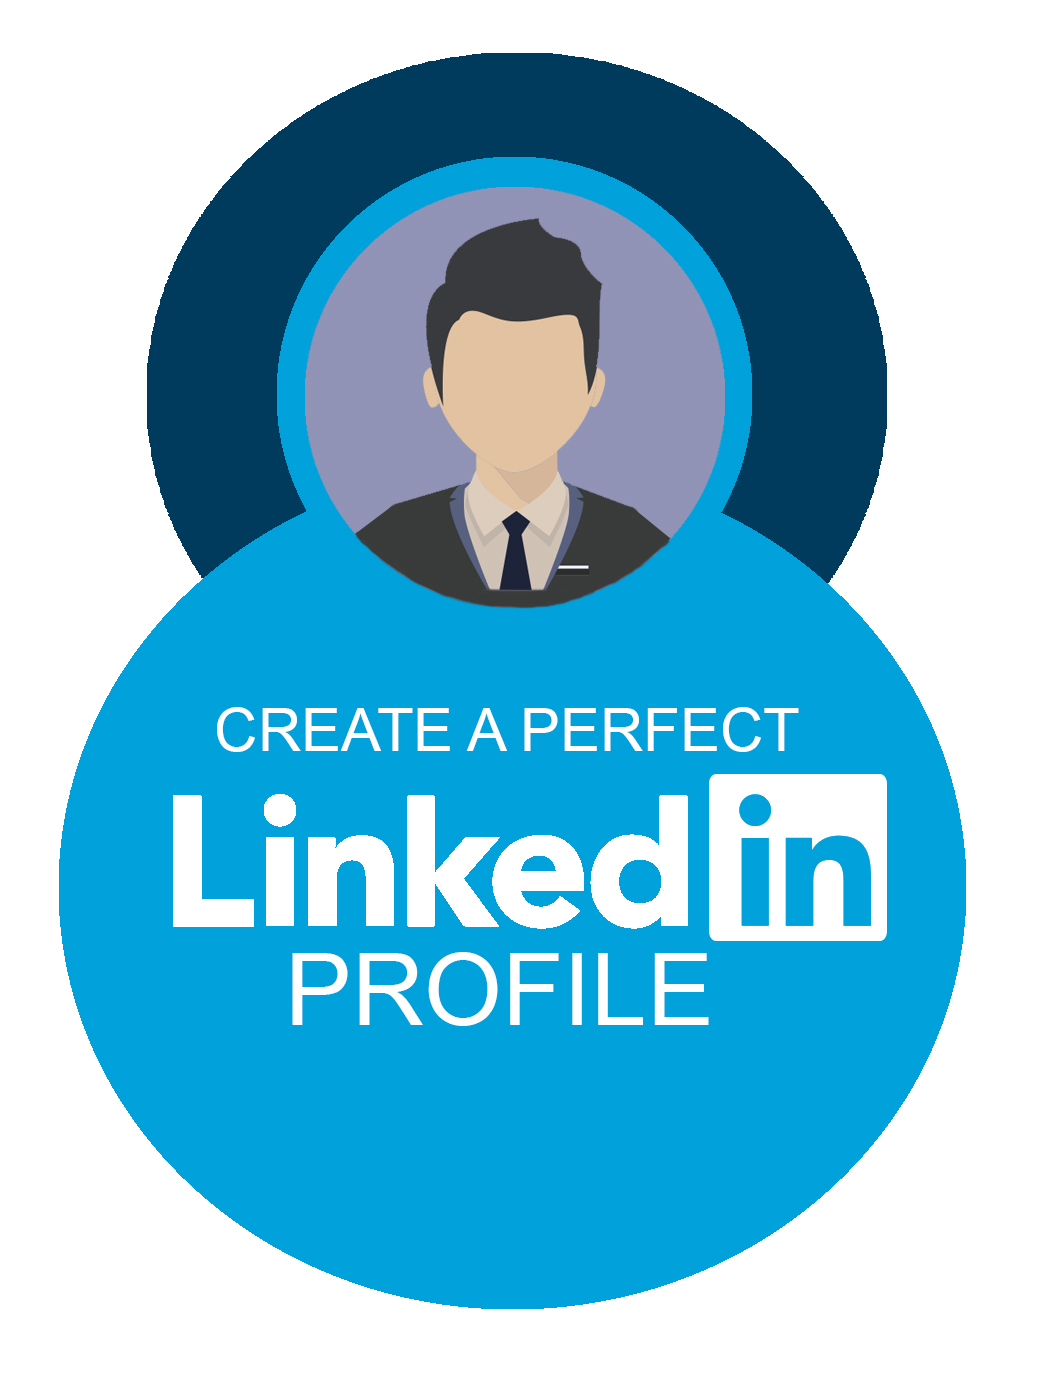 CREATING A GREAT LINKEDIN PROFILE FOR YOUR BUSINESS